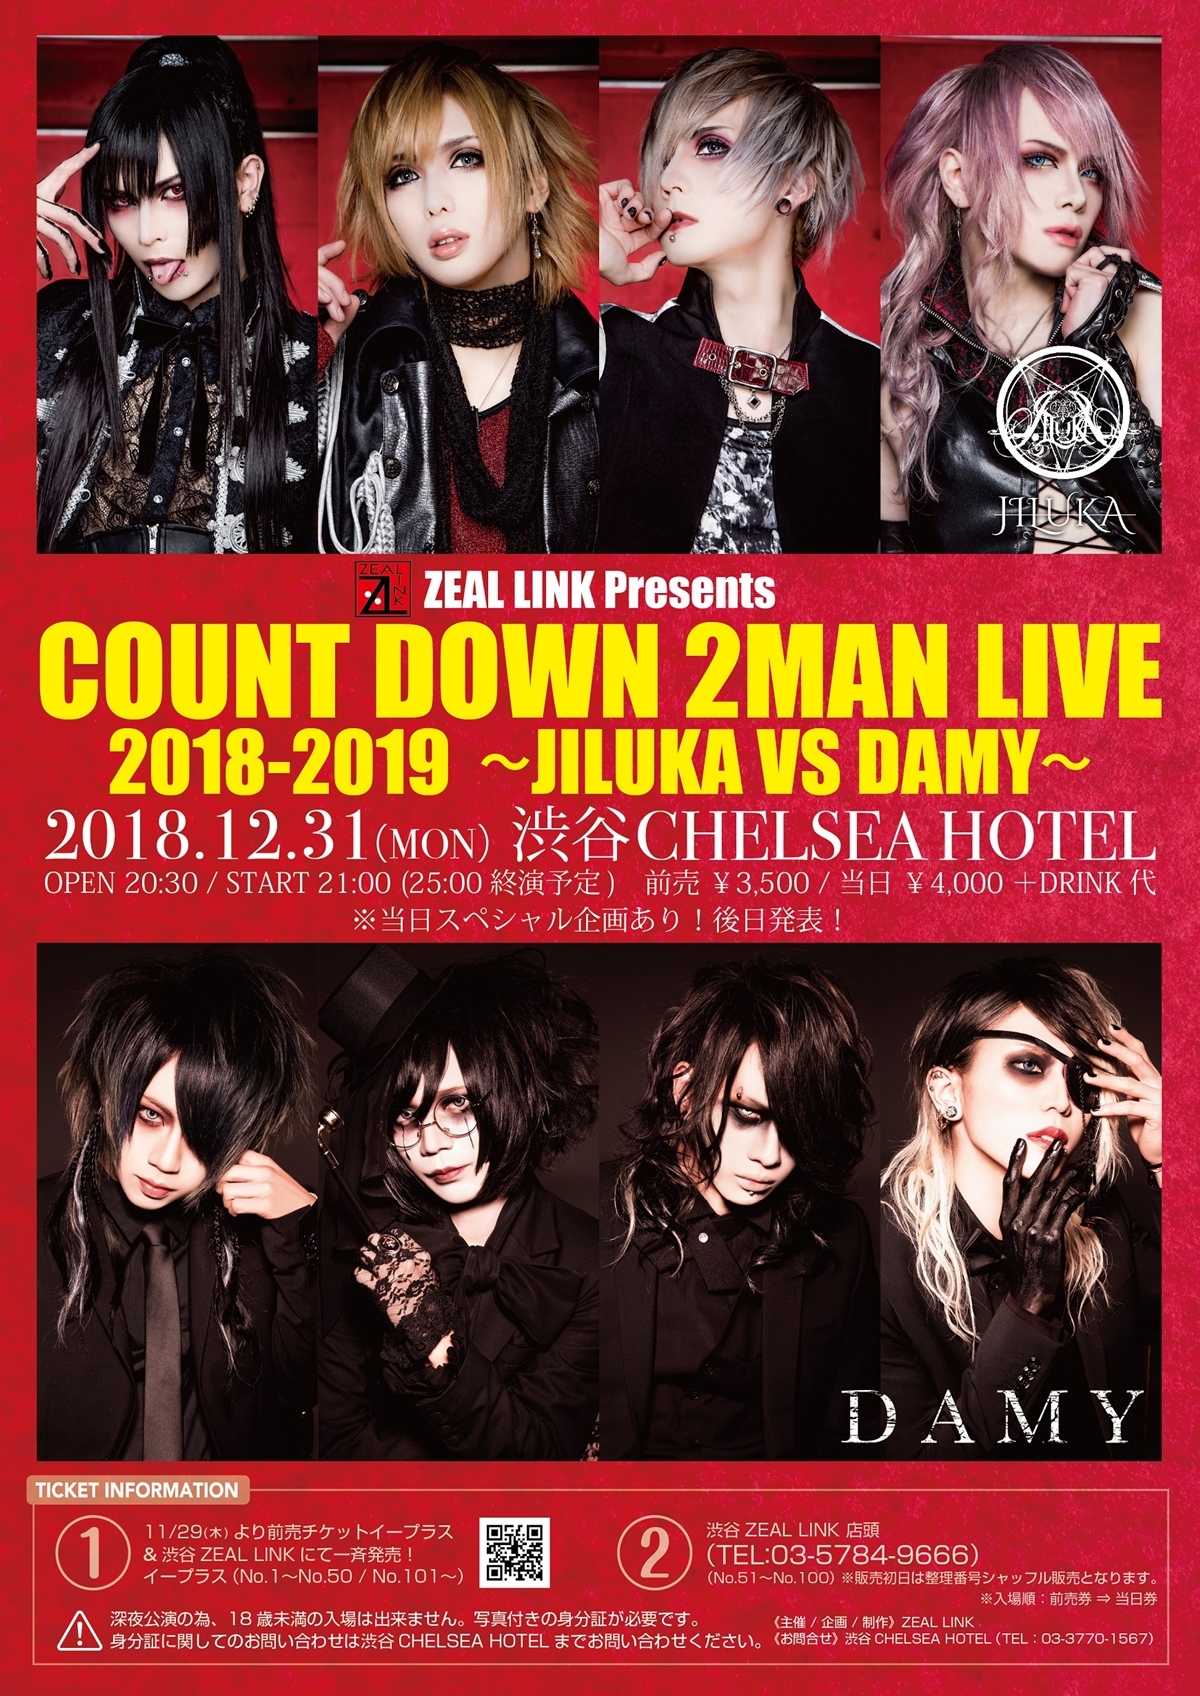 DAMY / JILUKA ZEAL LINK presents COUNT DOWN 2MAN LIVE 2018-2019 ~JILUKA VS DAMY~/2018.12.31(月) 渋谷CHELSEA HOTEL | ヴィジュアル系ポータルサイト「ViSULOG」